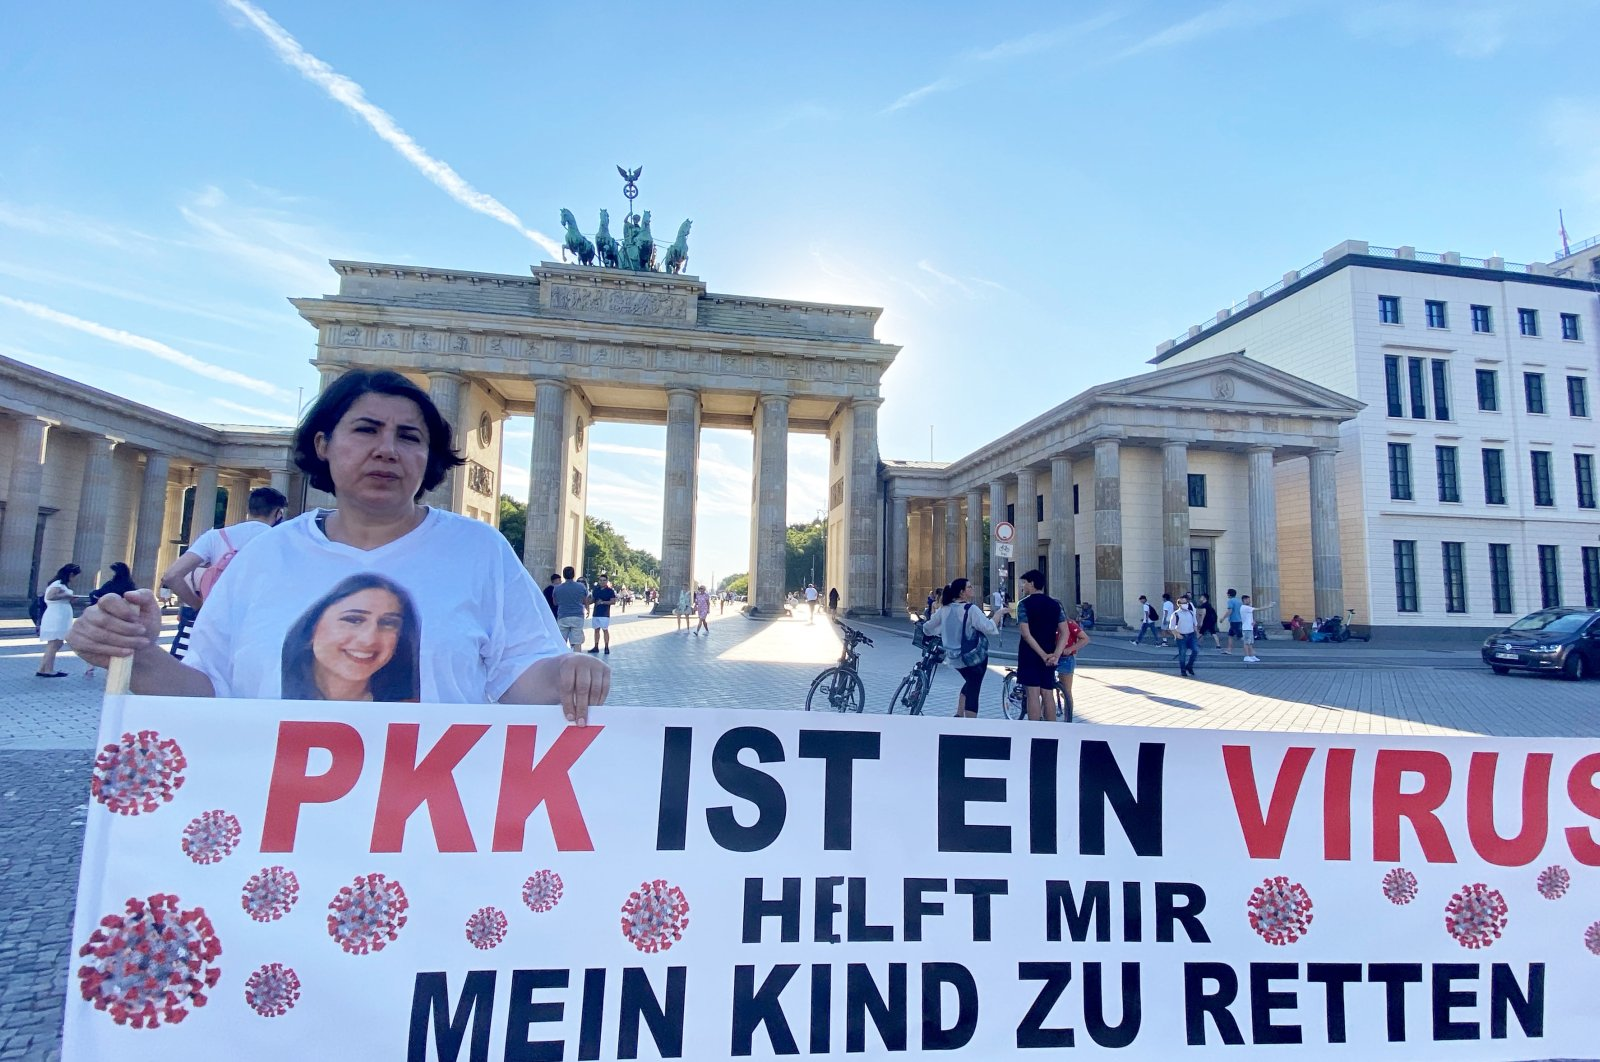 Turkish-German mother Maide T. continues her protest in front of Brandenburg Gate to demand the return of her daughter who was forcibly recruited by the PKK terrorist group in Berlin, Germany on Aug. 5, 2020. (AA Photo)